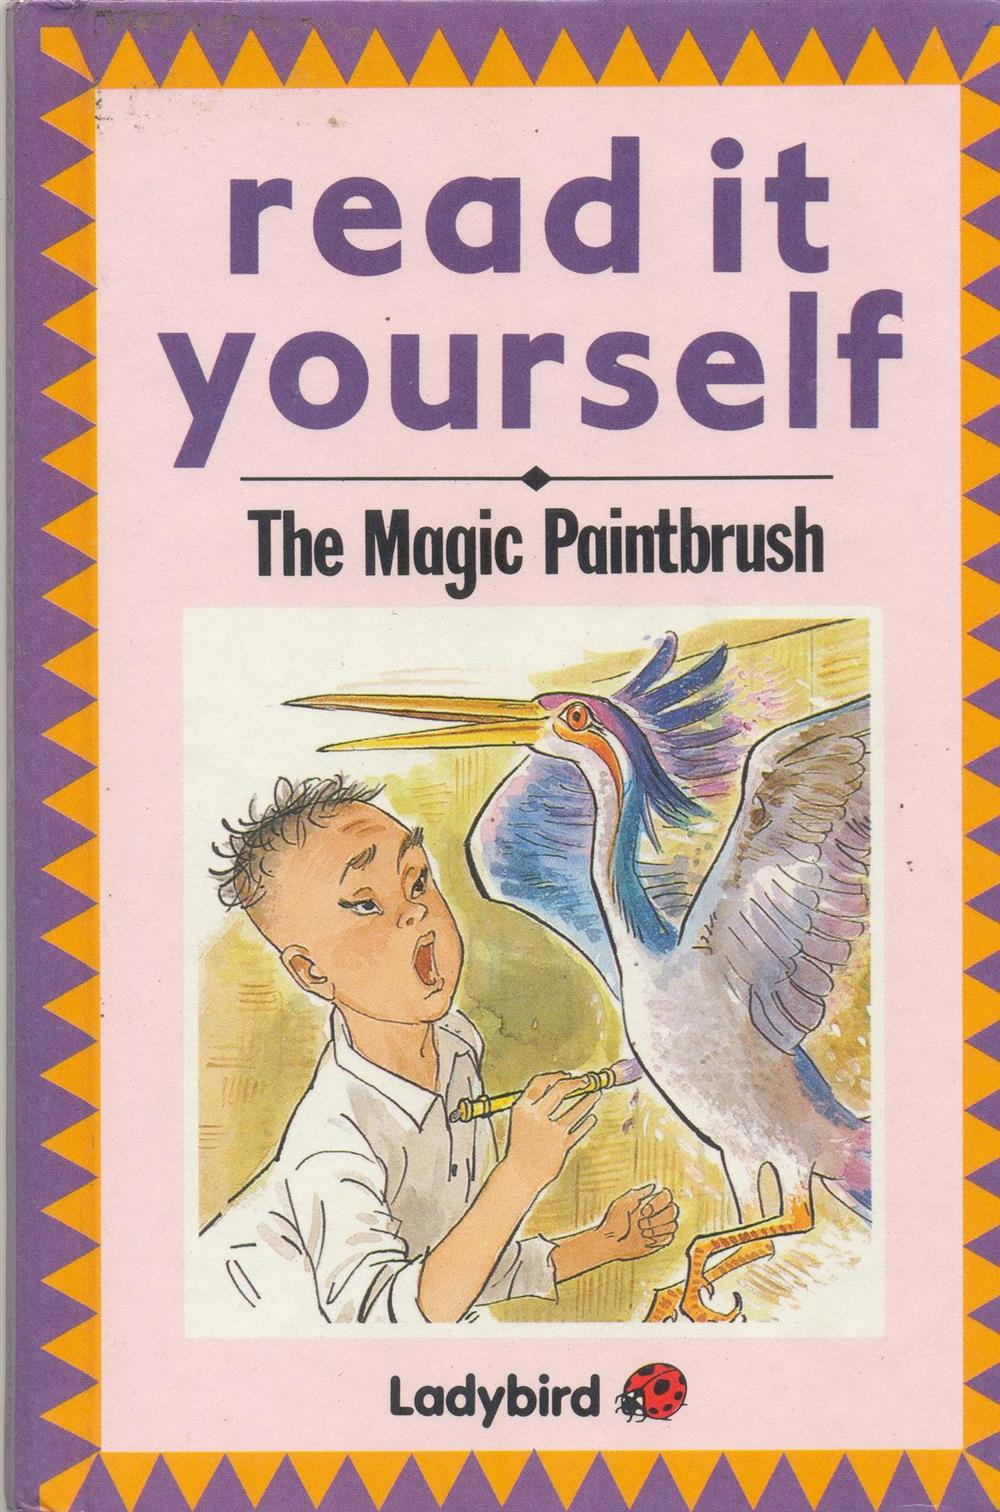 The magic Paintbrush 001.jpg